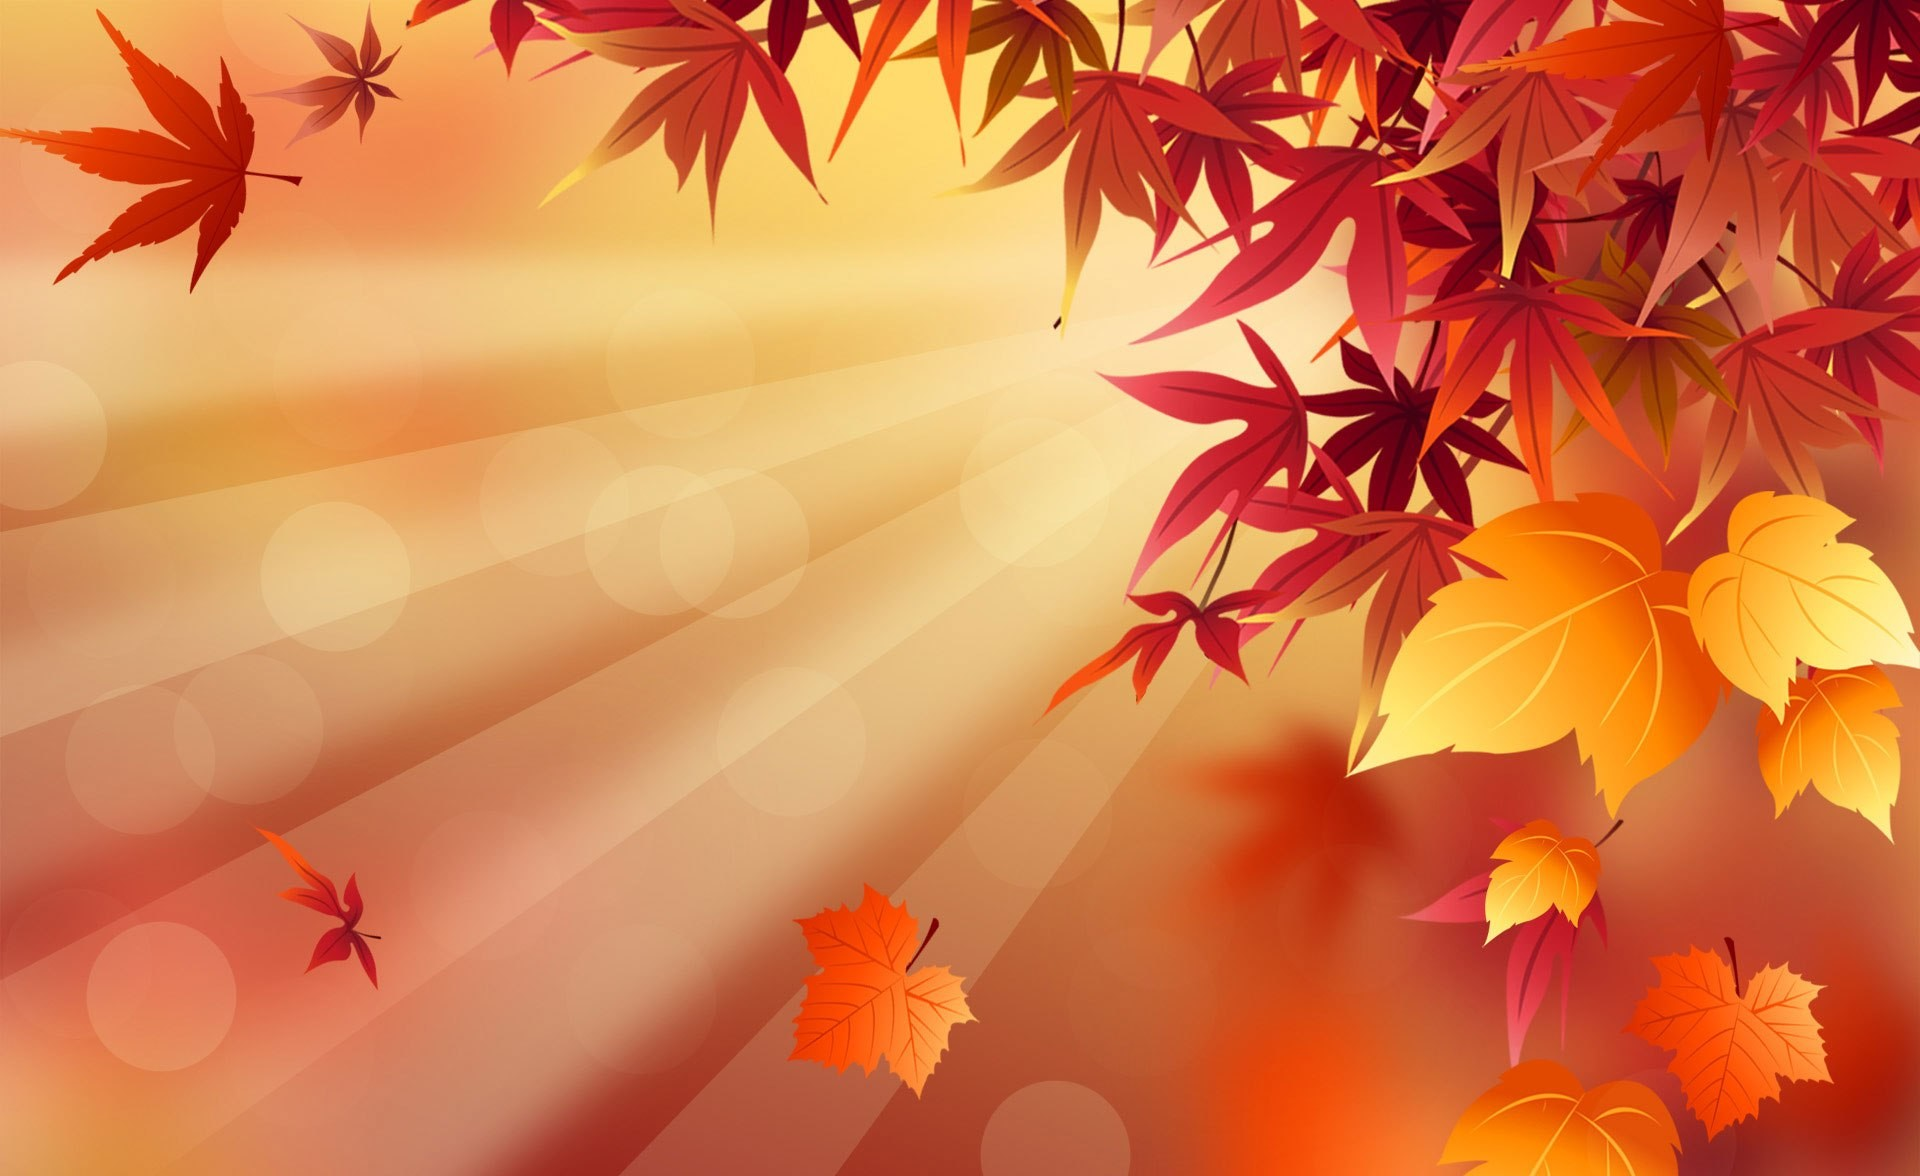 46 Free Fall Wallpapers and Backgrounds: Fall Wallpaper by Jpquidores